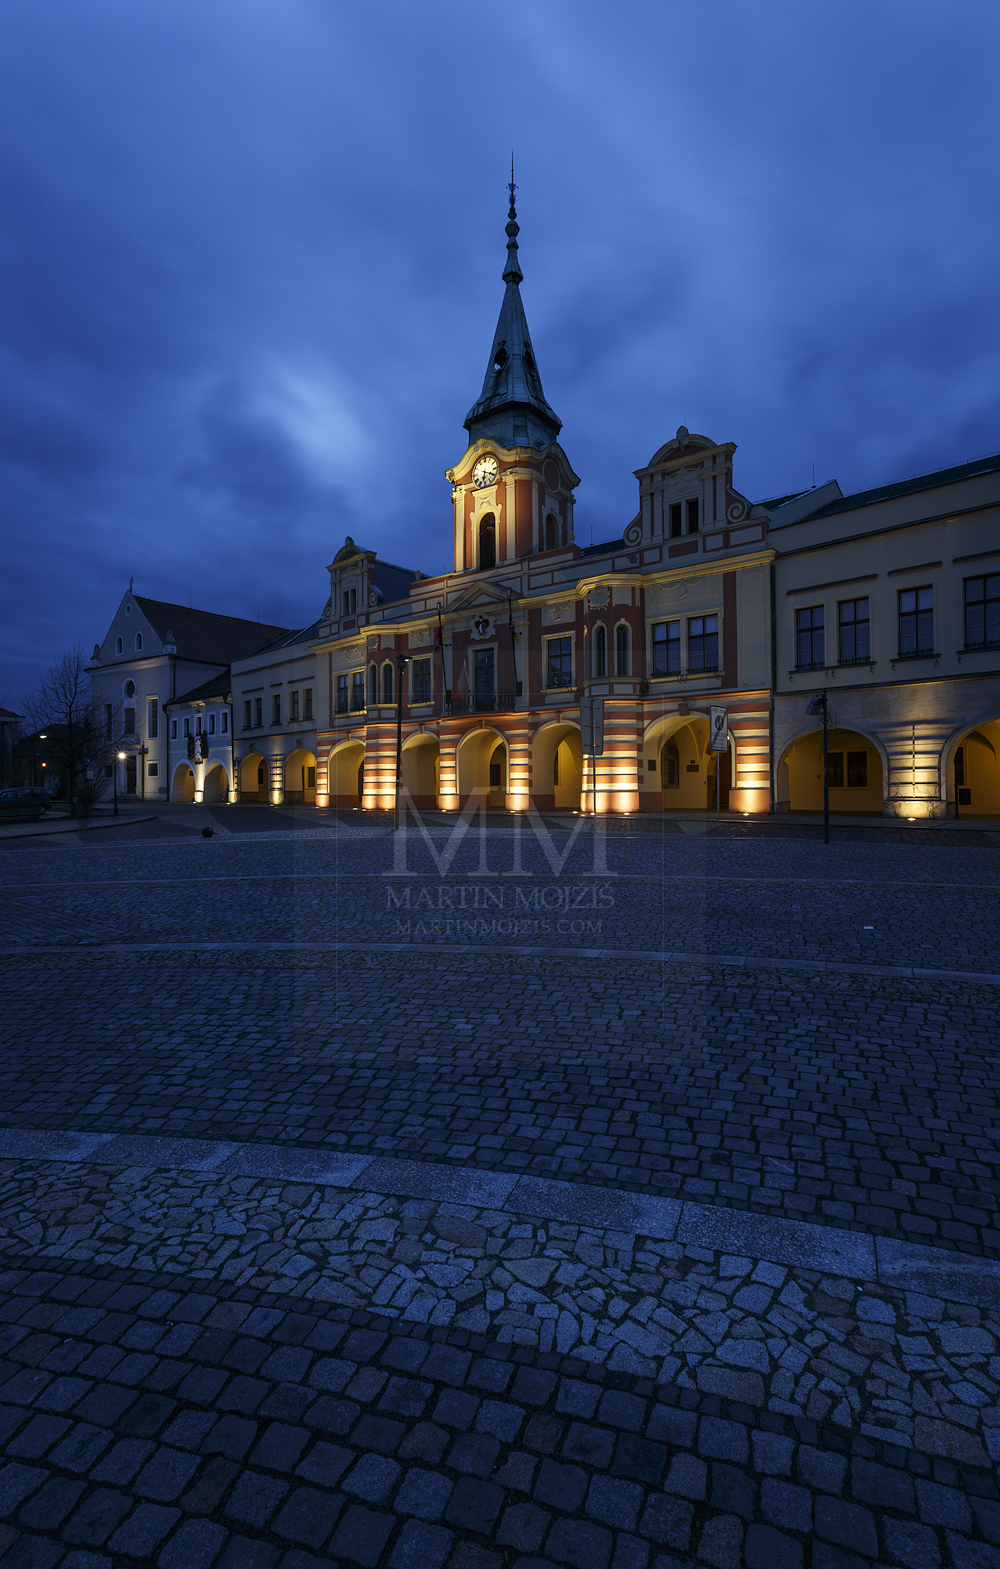 Melnik Town (City) Hall. Photograph © Martin Mojzis.